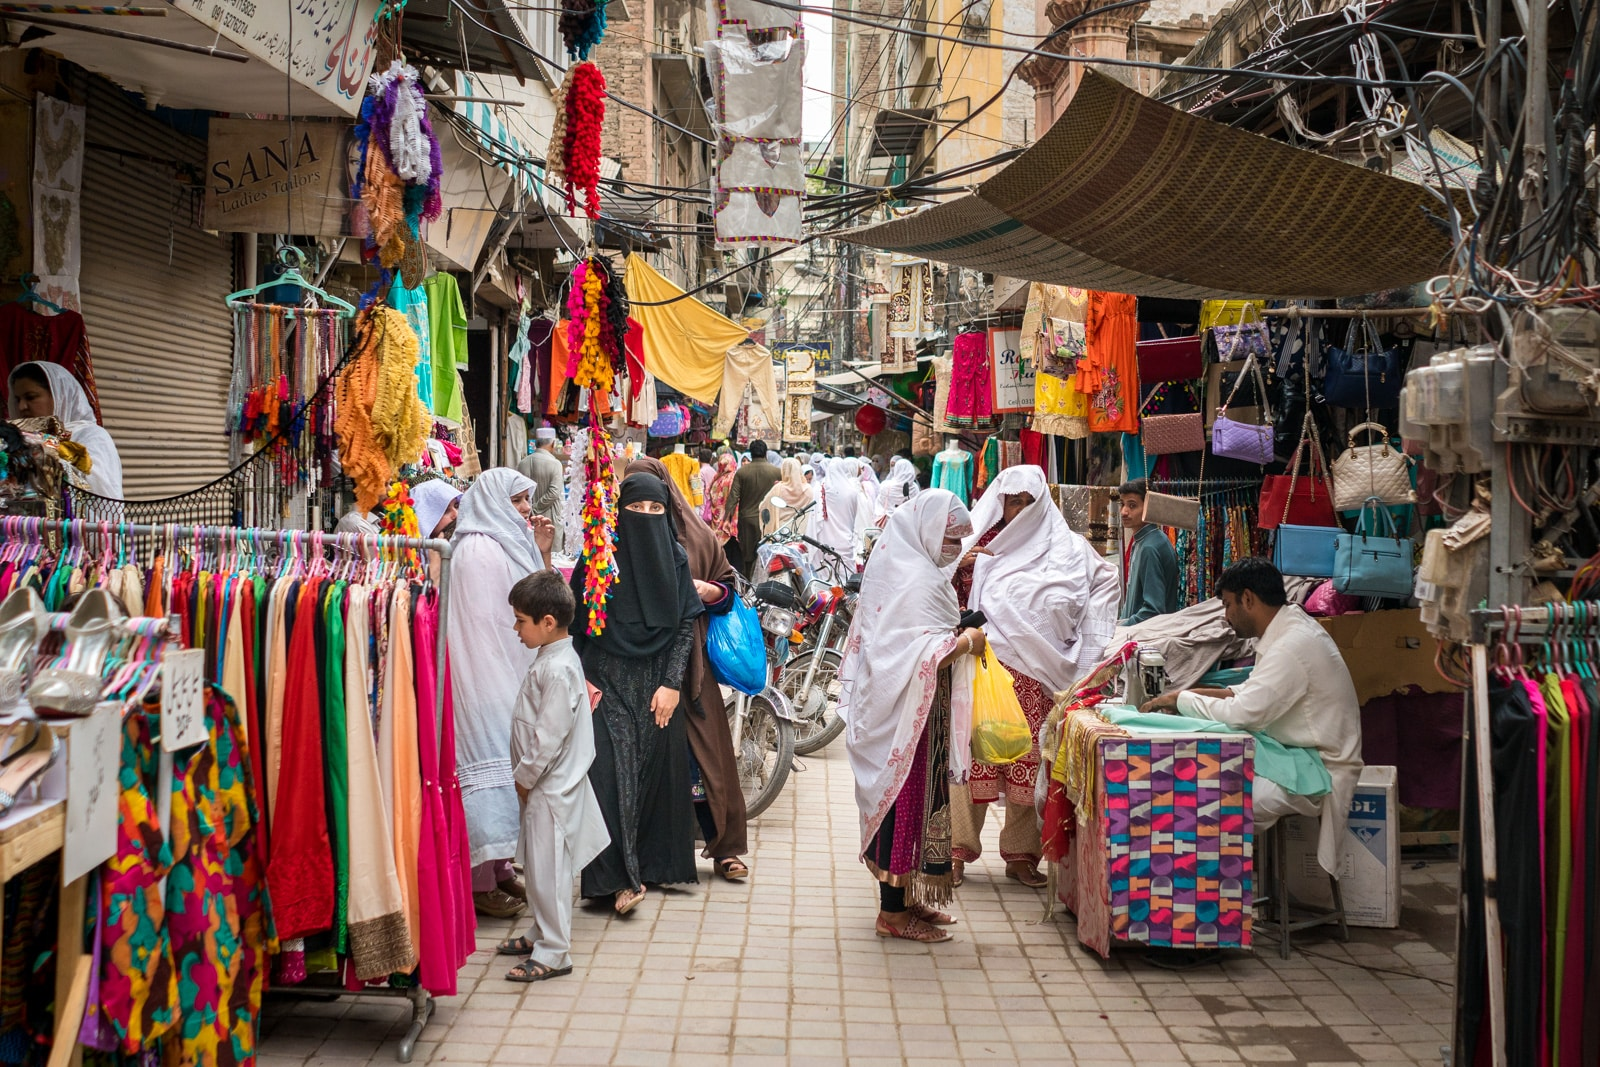 Ladies shopping for clothes in a bazaar in Peshawar, Pakistan